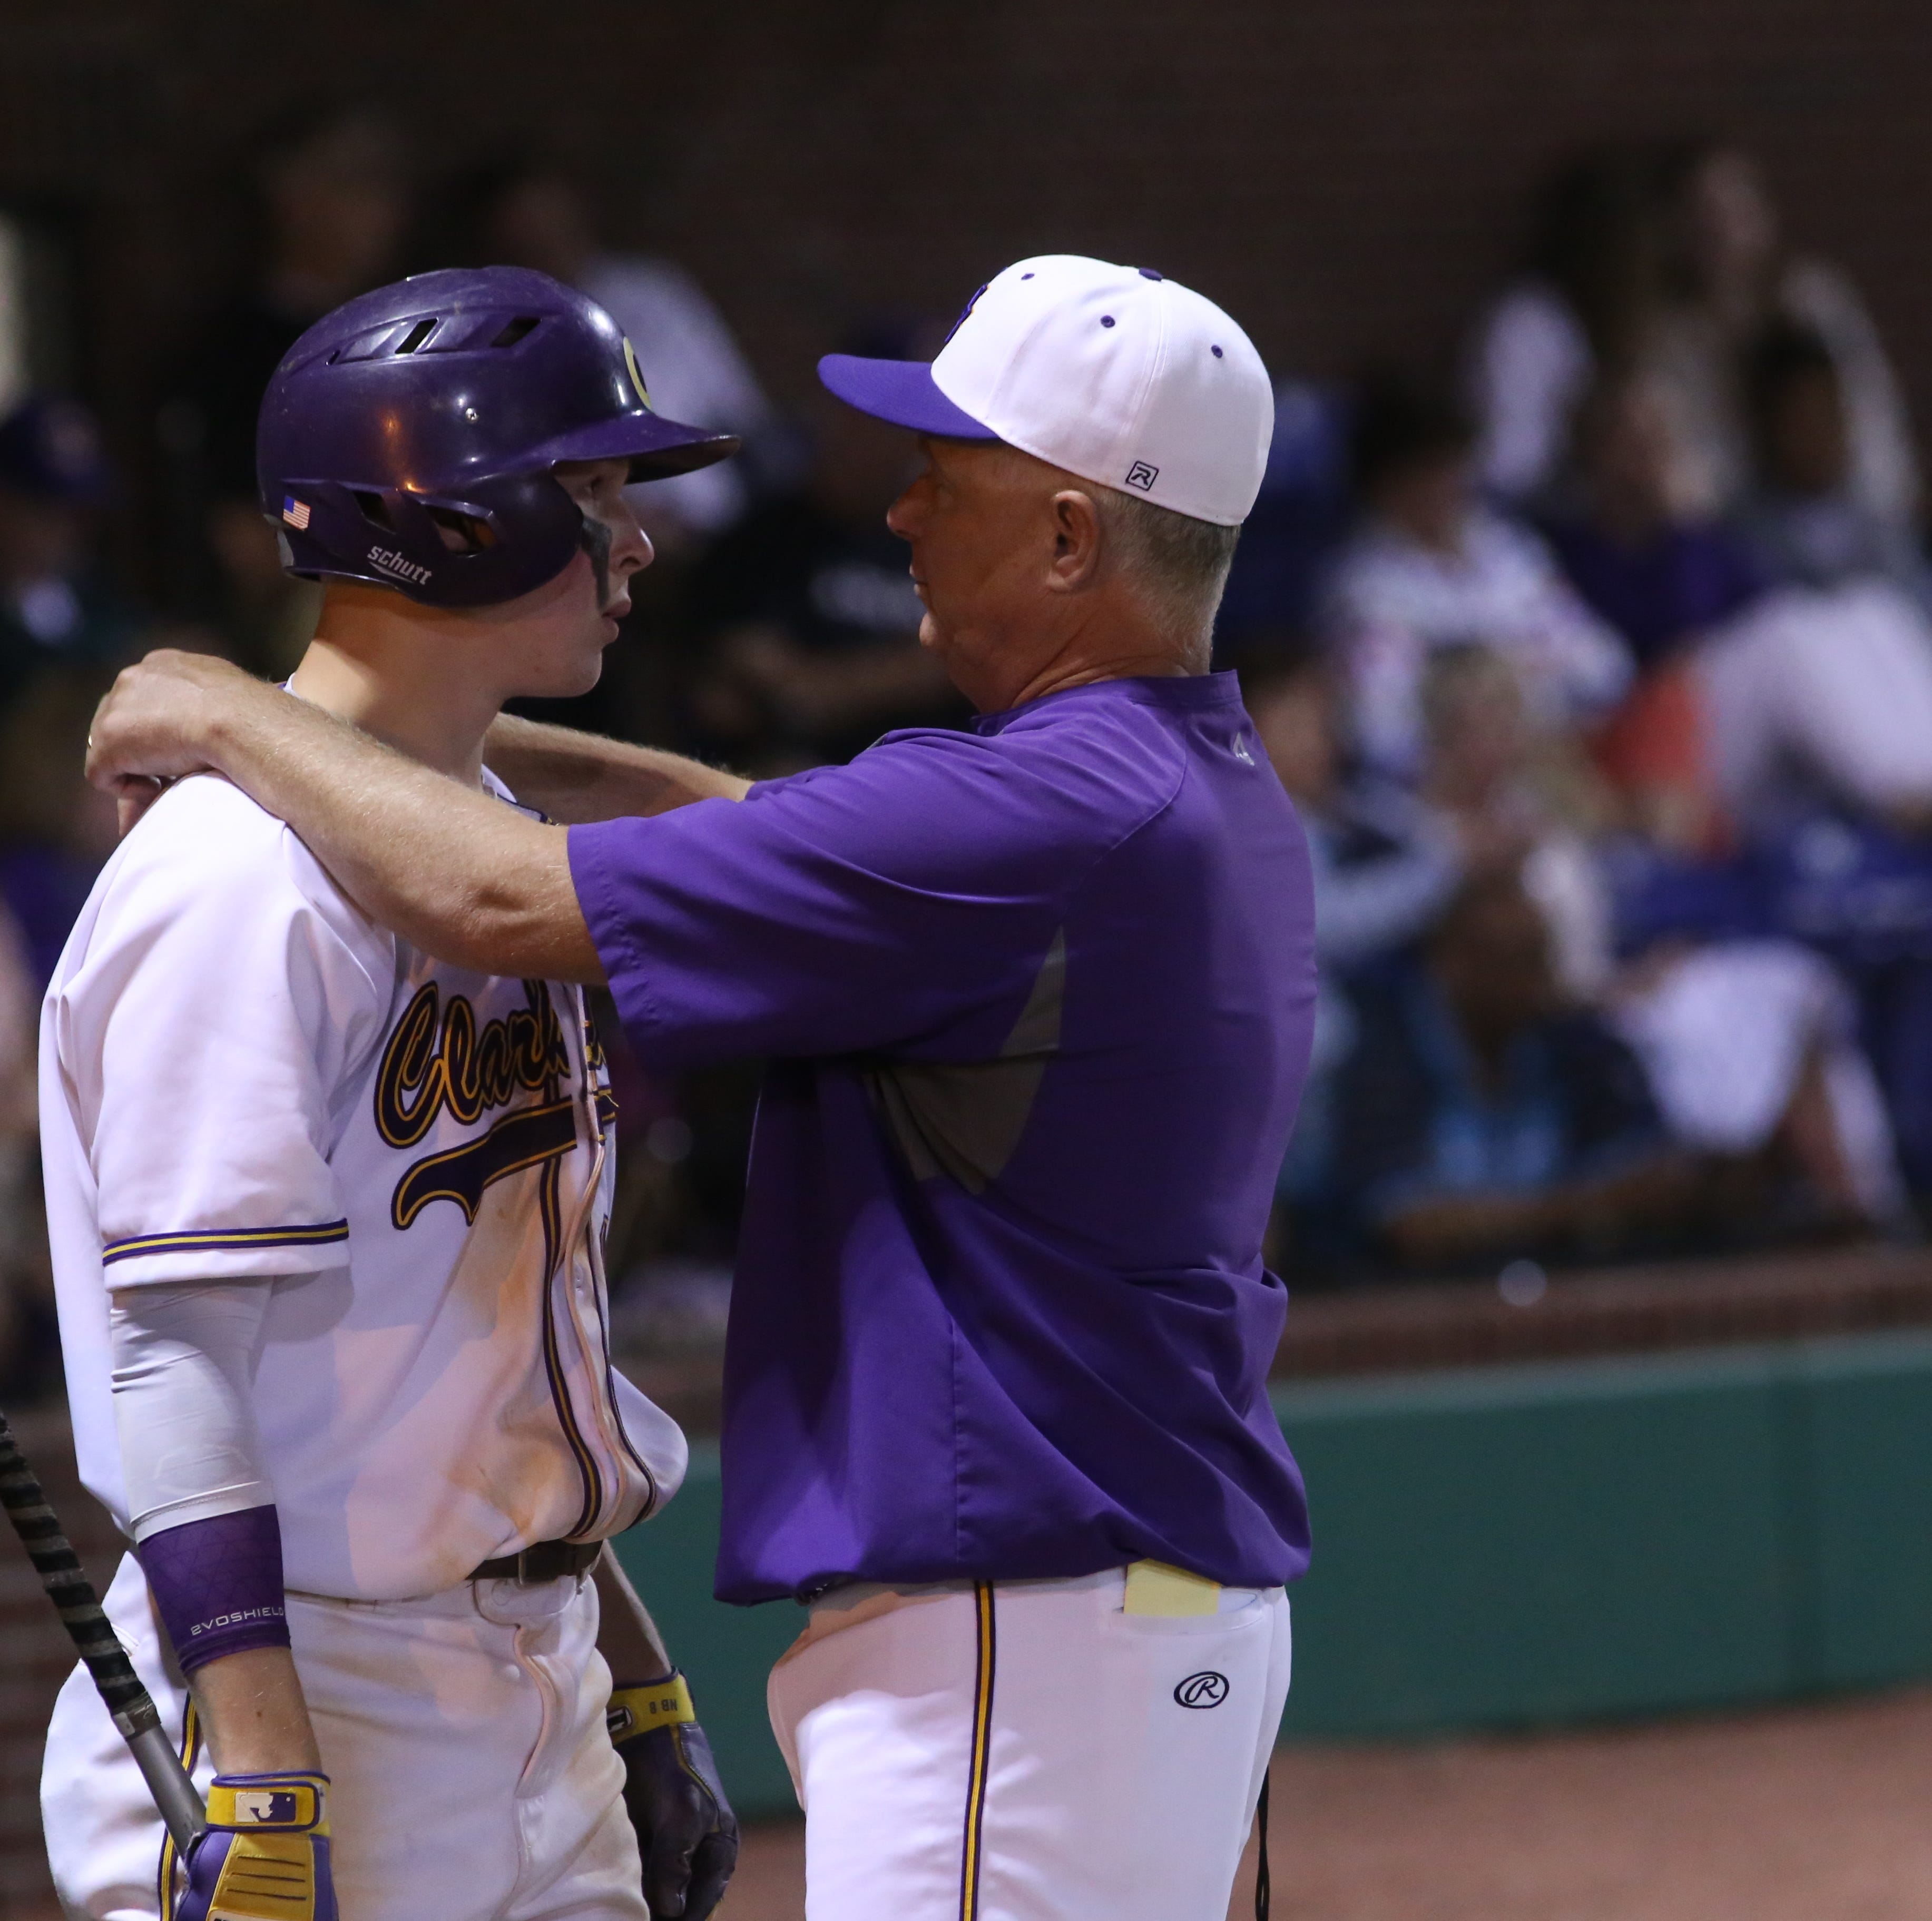 Clarksville High baseball not envious of Rossview's state title, trying to carve own path